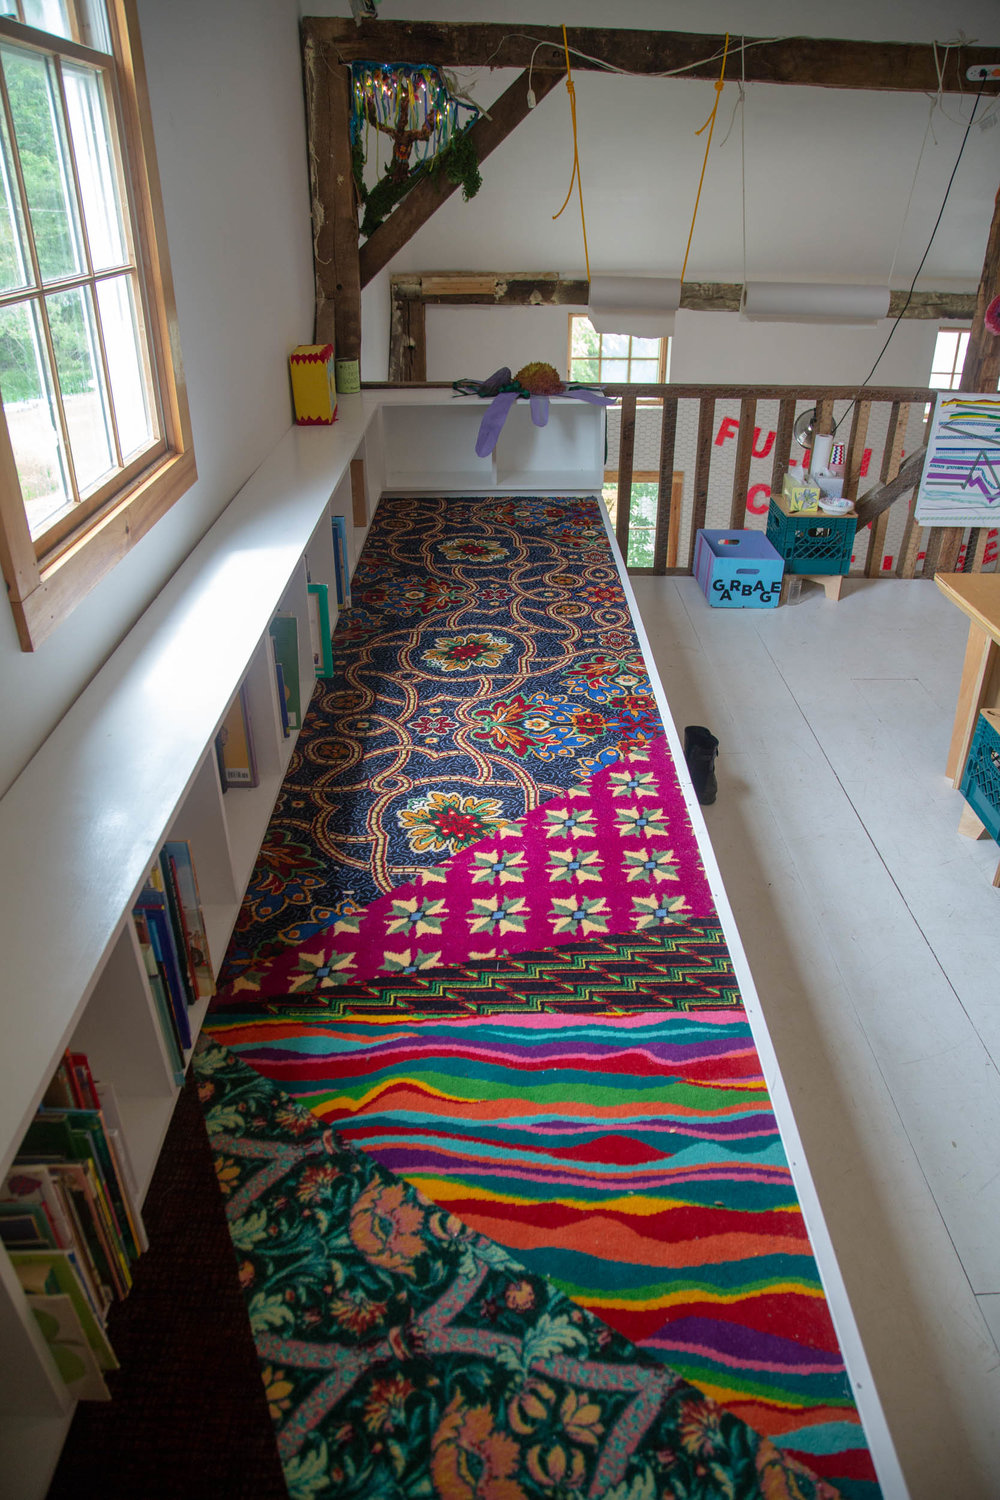 wassaic-project-location-art-nest-2018-07-25-18-09-56.jpg